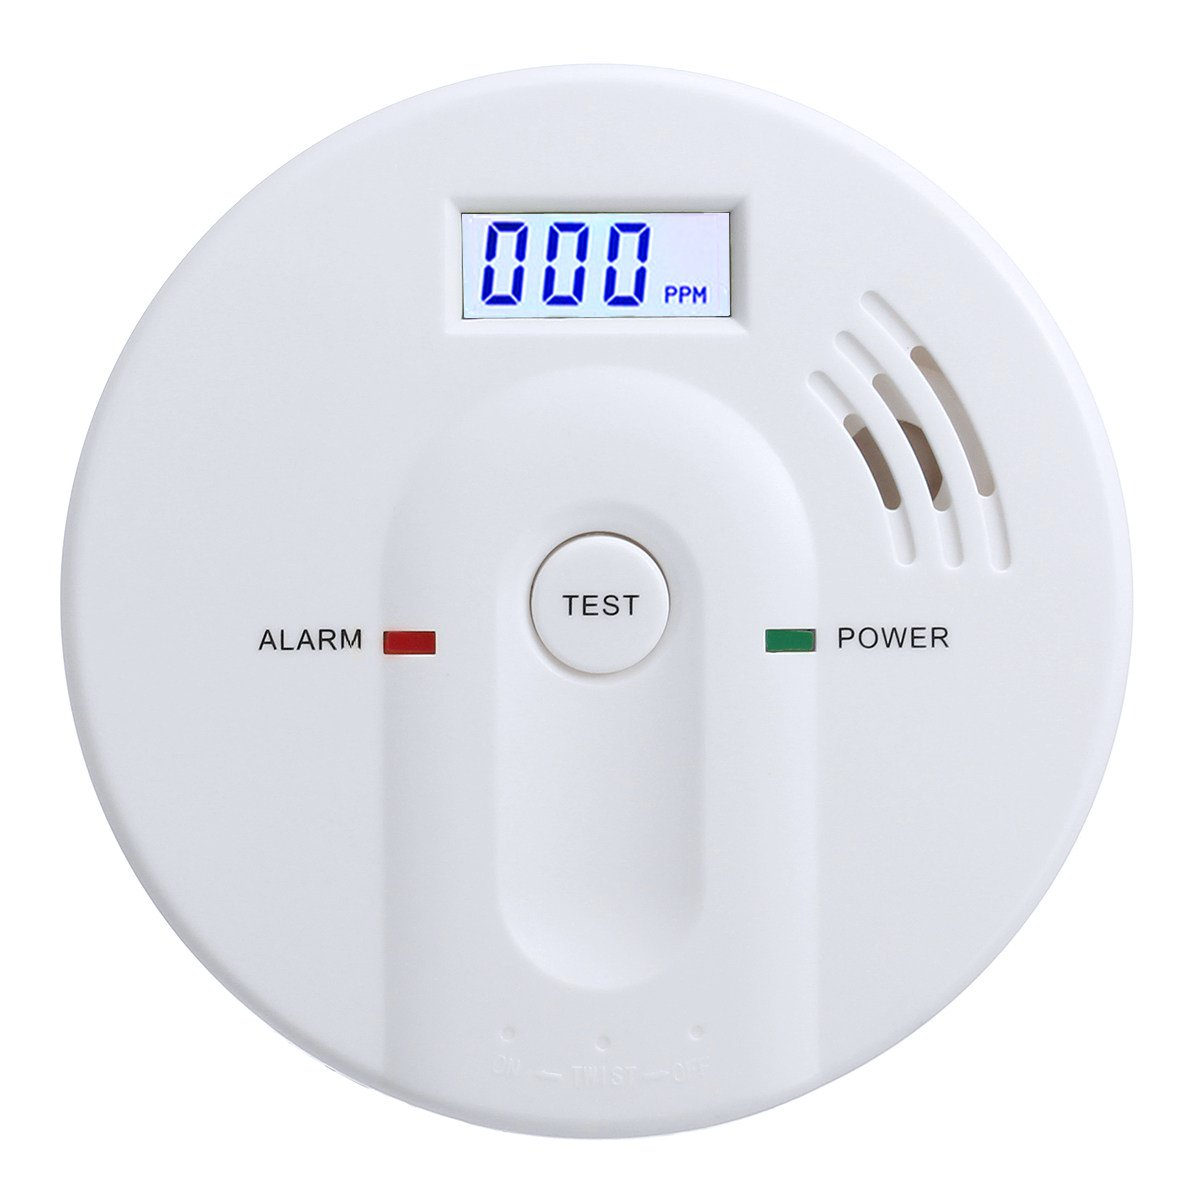 Dalanpa CO Detector Carbon Monoxide Alarm with LCD Digital Display Battery Operated